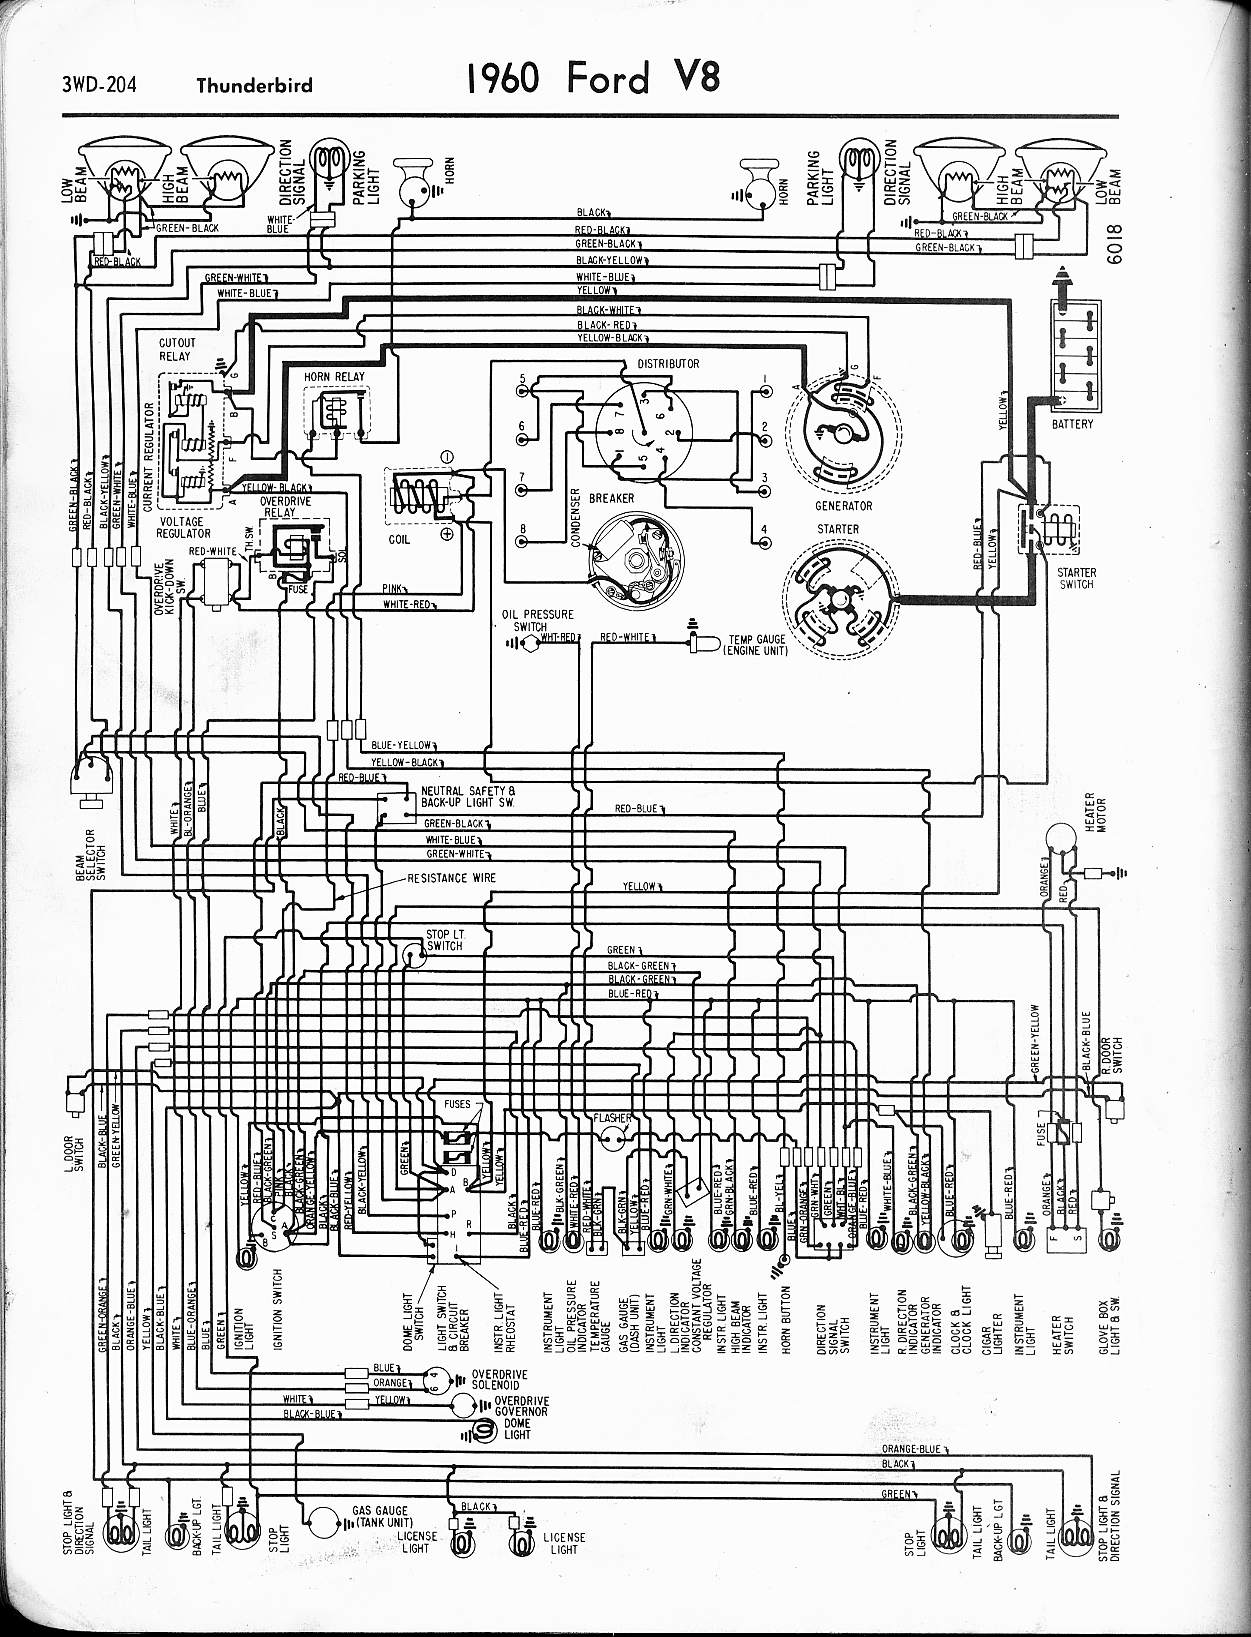 MWire5765 204 57 65 ford wiring diagrams 1957 Ford Wiring Diagram at fashall.co